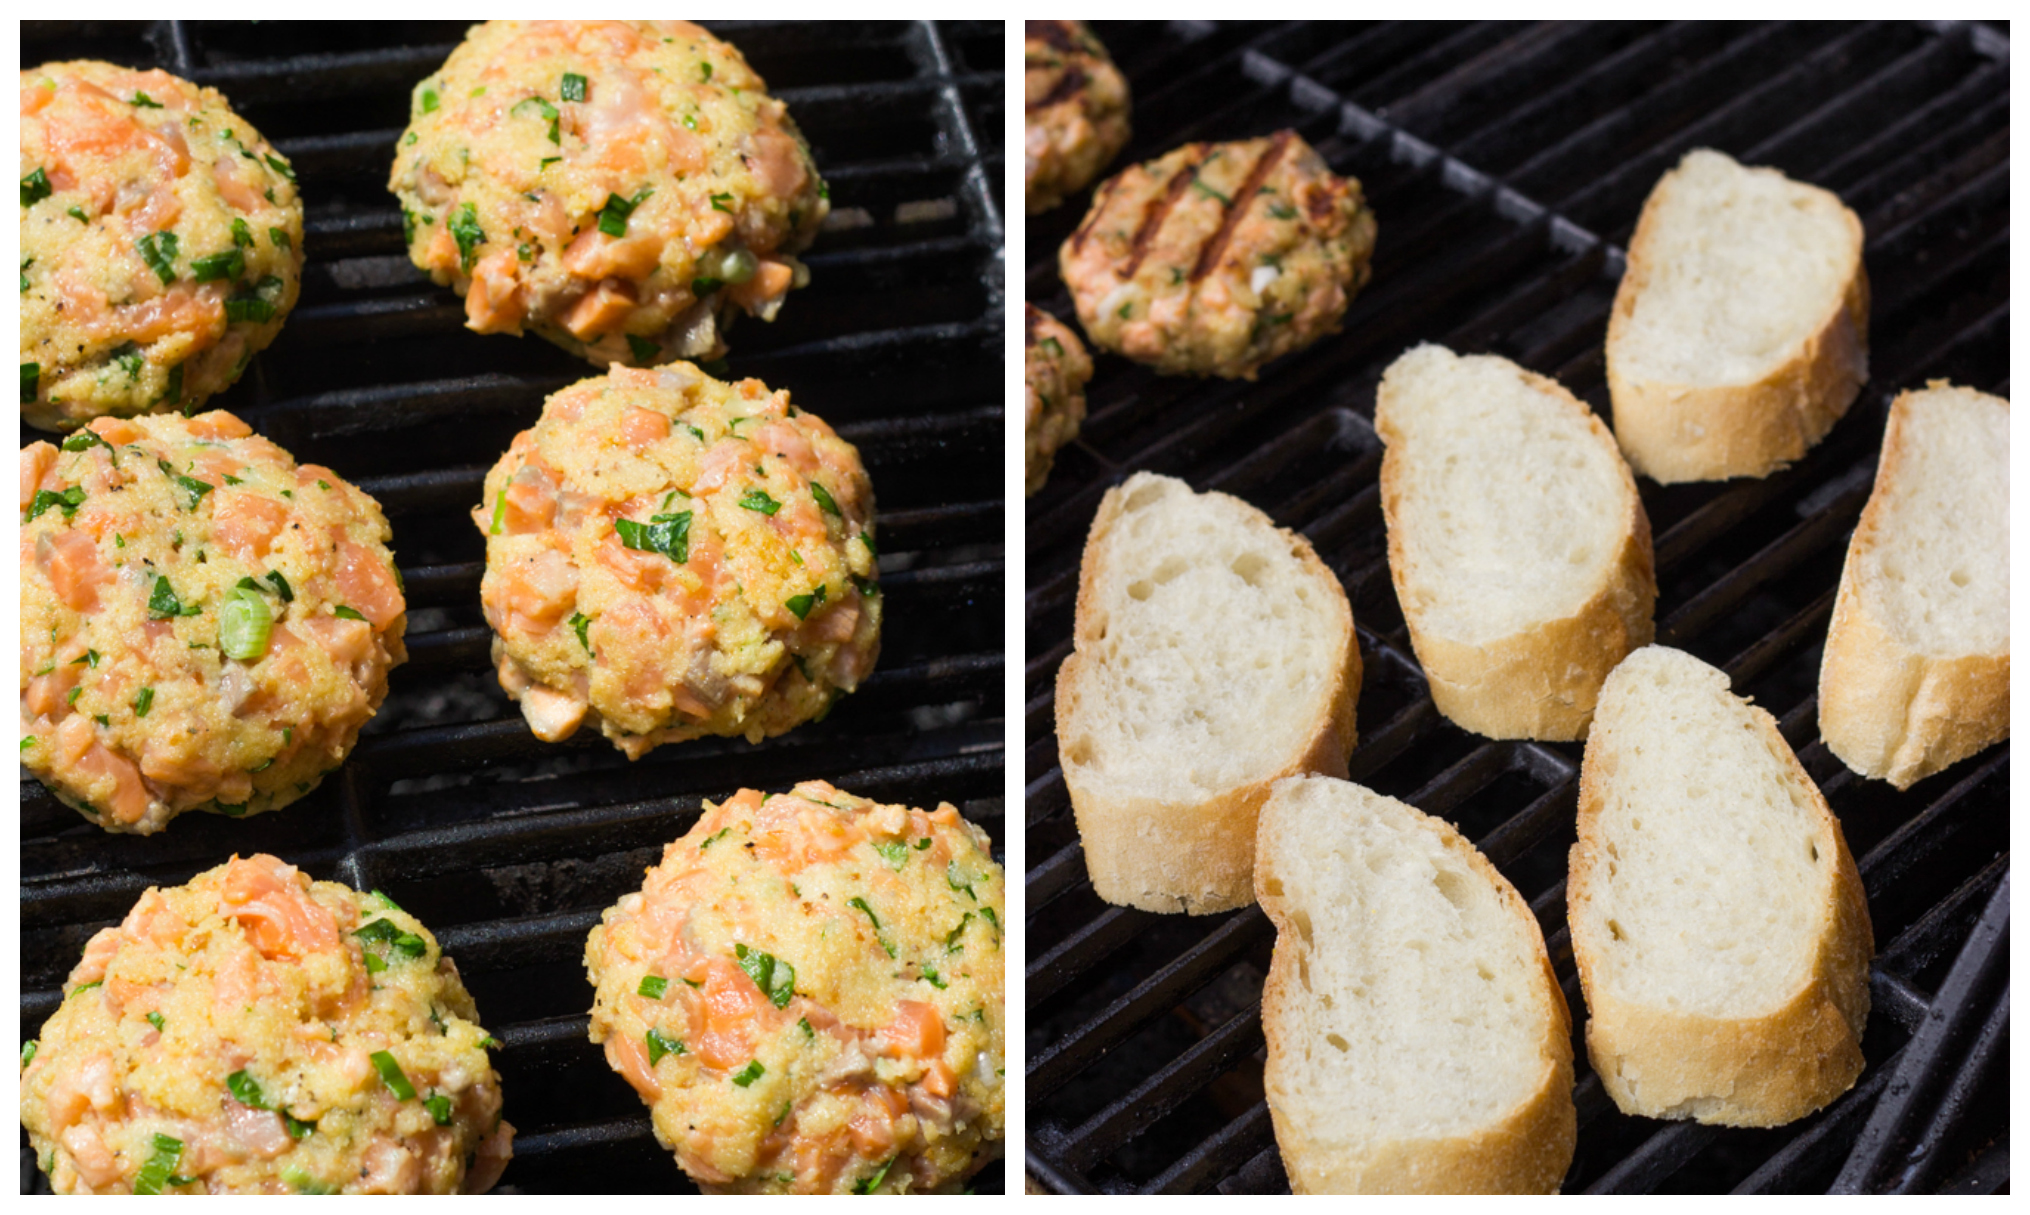 grilled salmon burgers on a grill